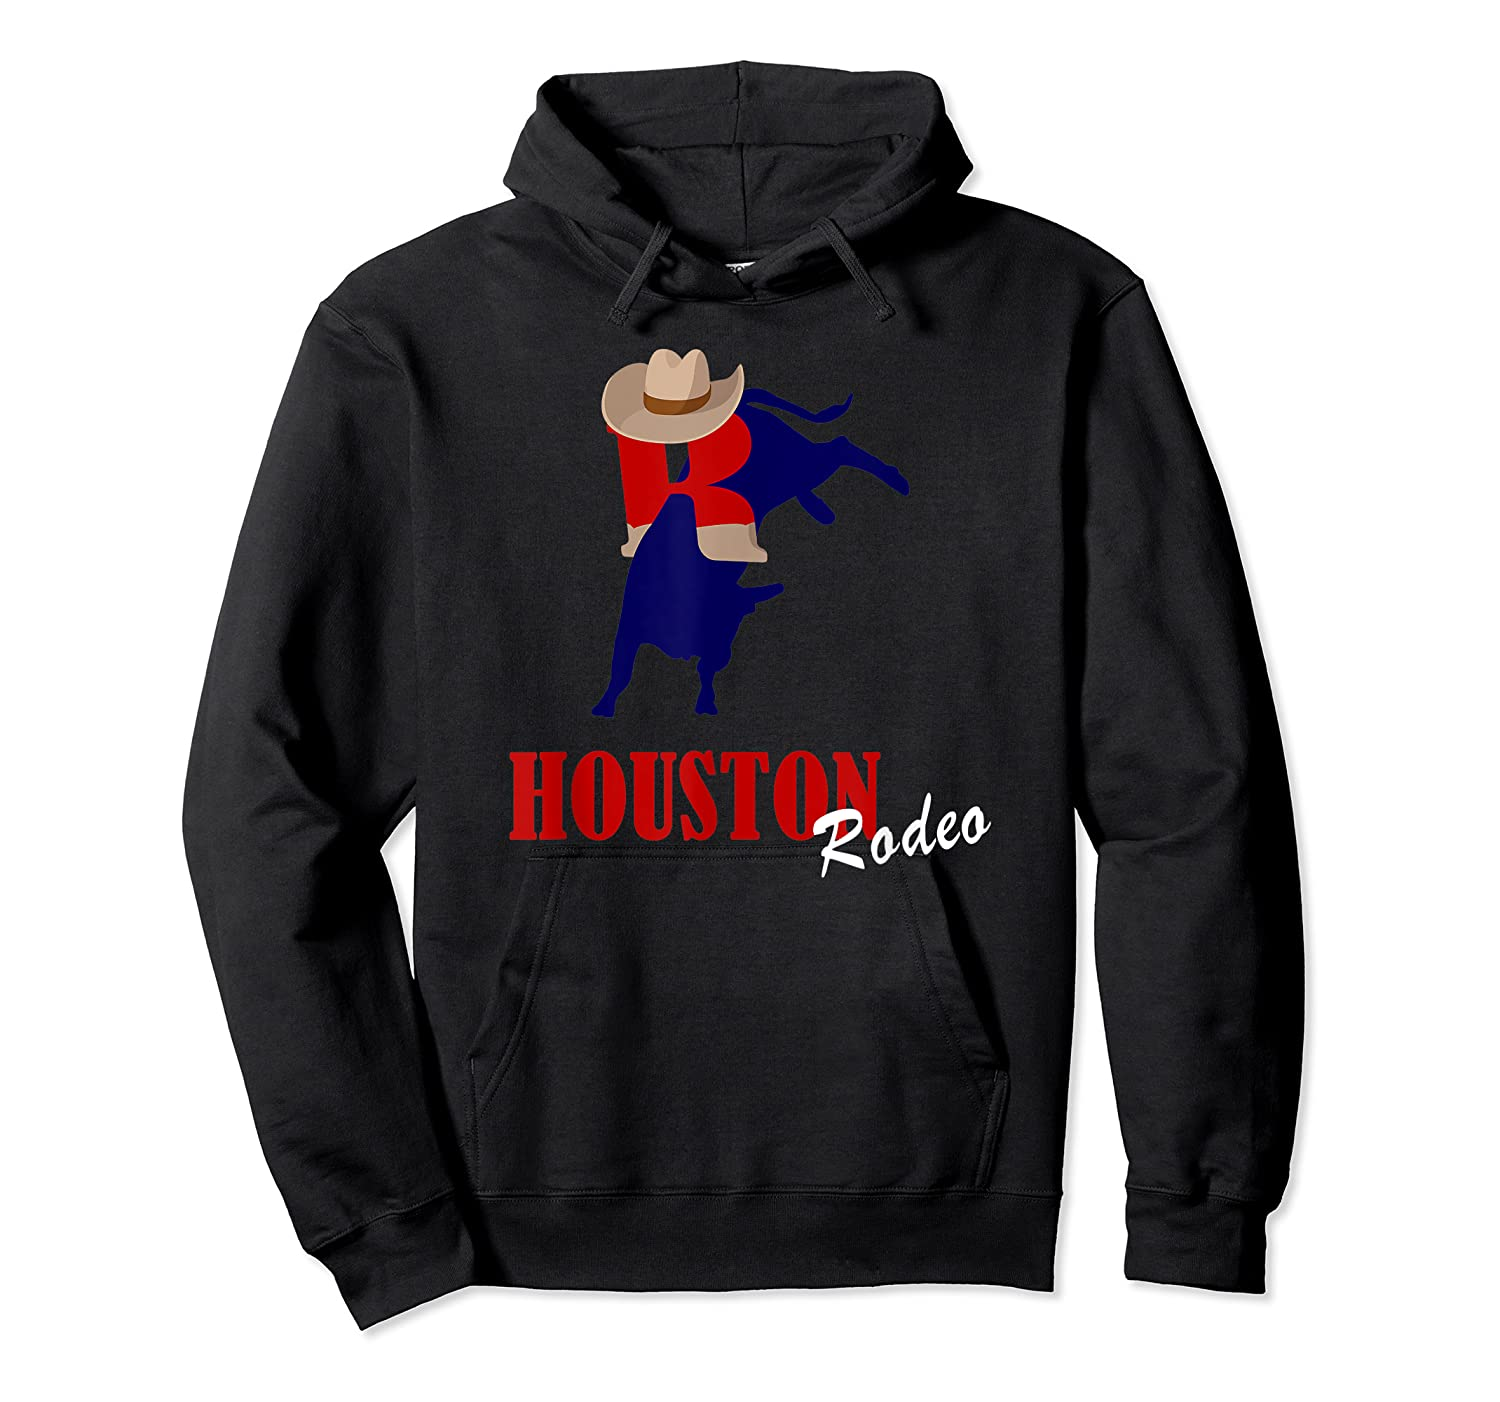 Rodeo 2019 T Shirt Houston Rodeo Cowboy Unisex Pullover Hoodie